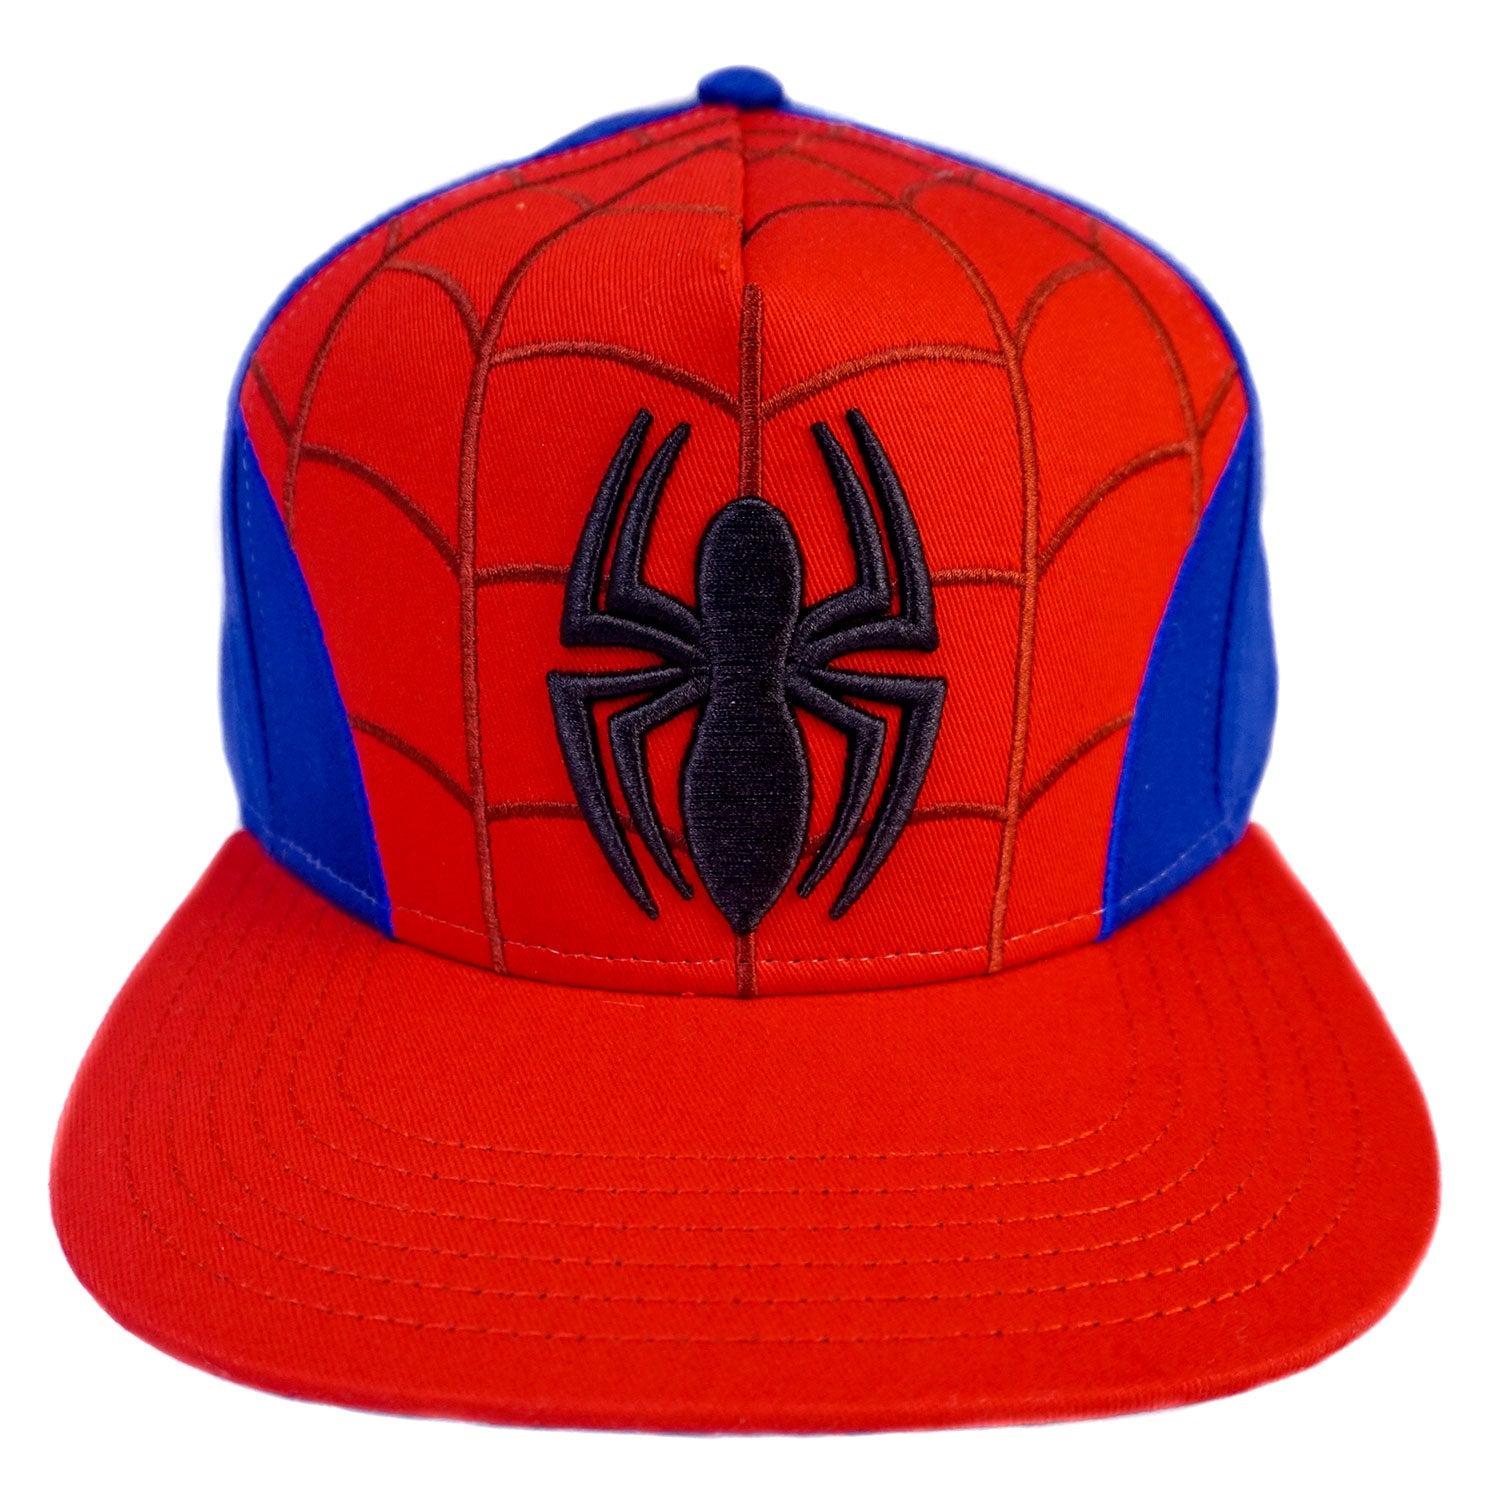 Marvel - Spider-man Suit up Snapback